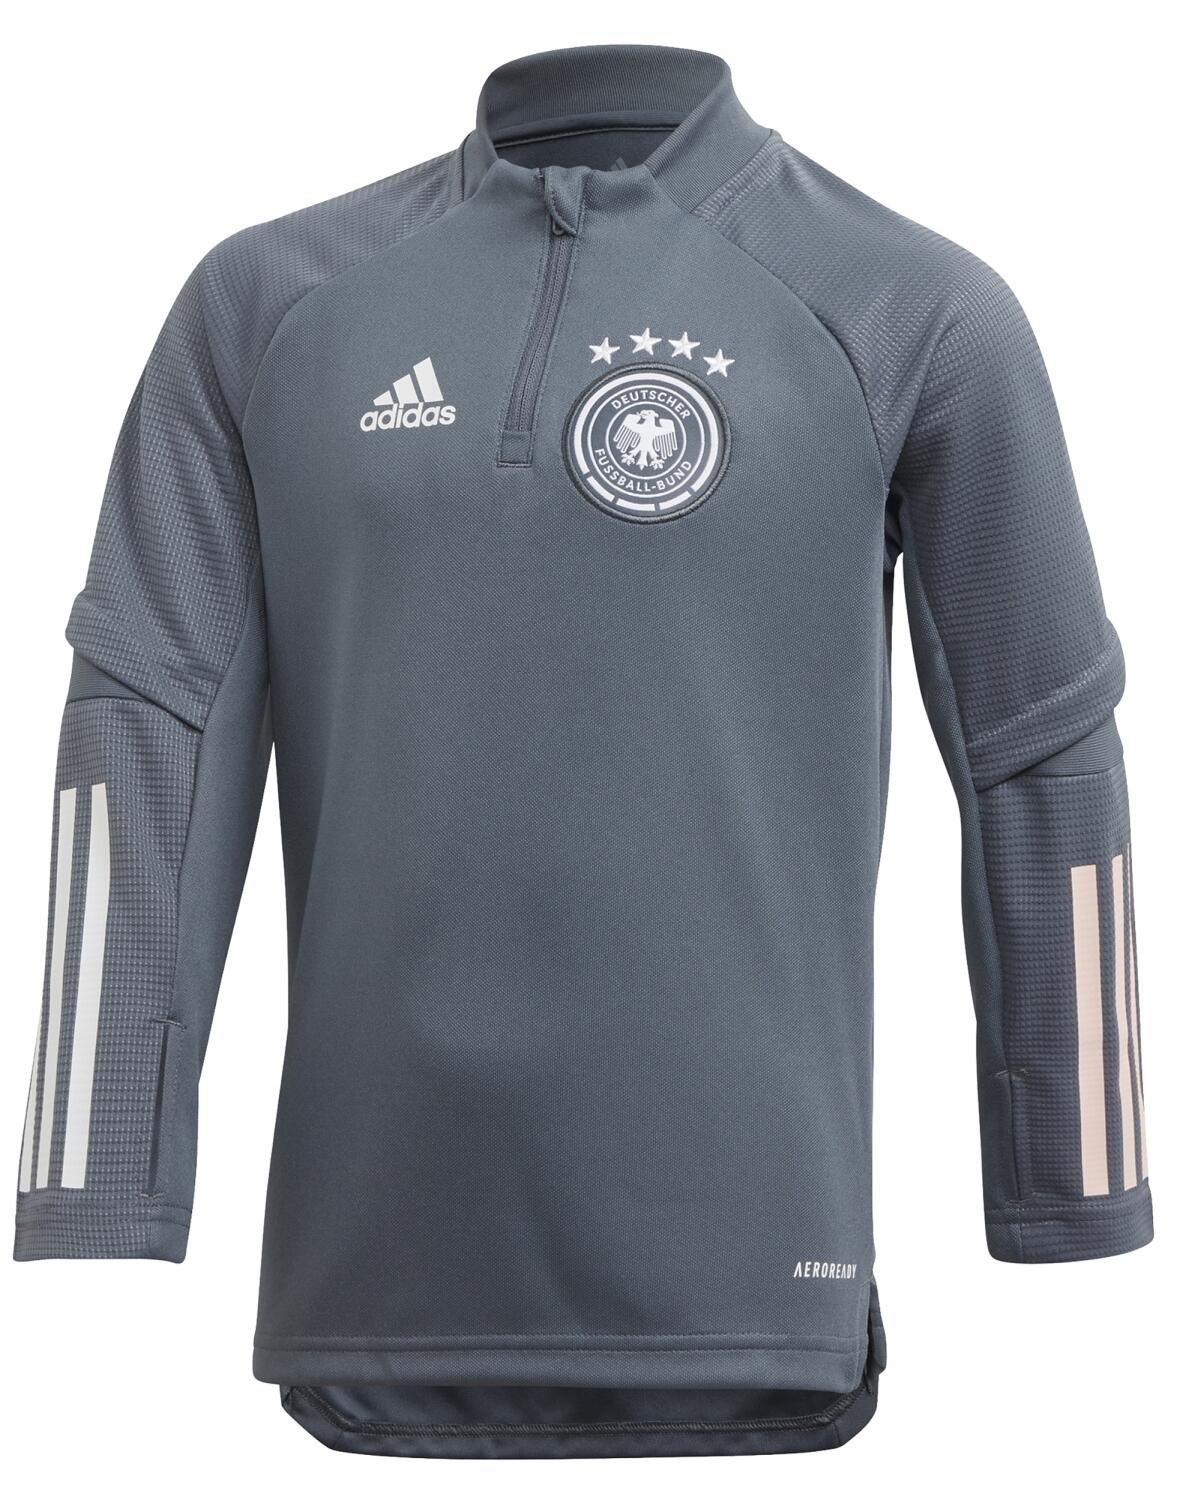 adidas Trainingsoberteil Youth EM 2020